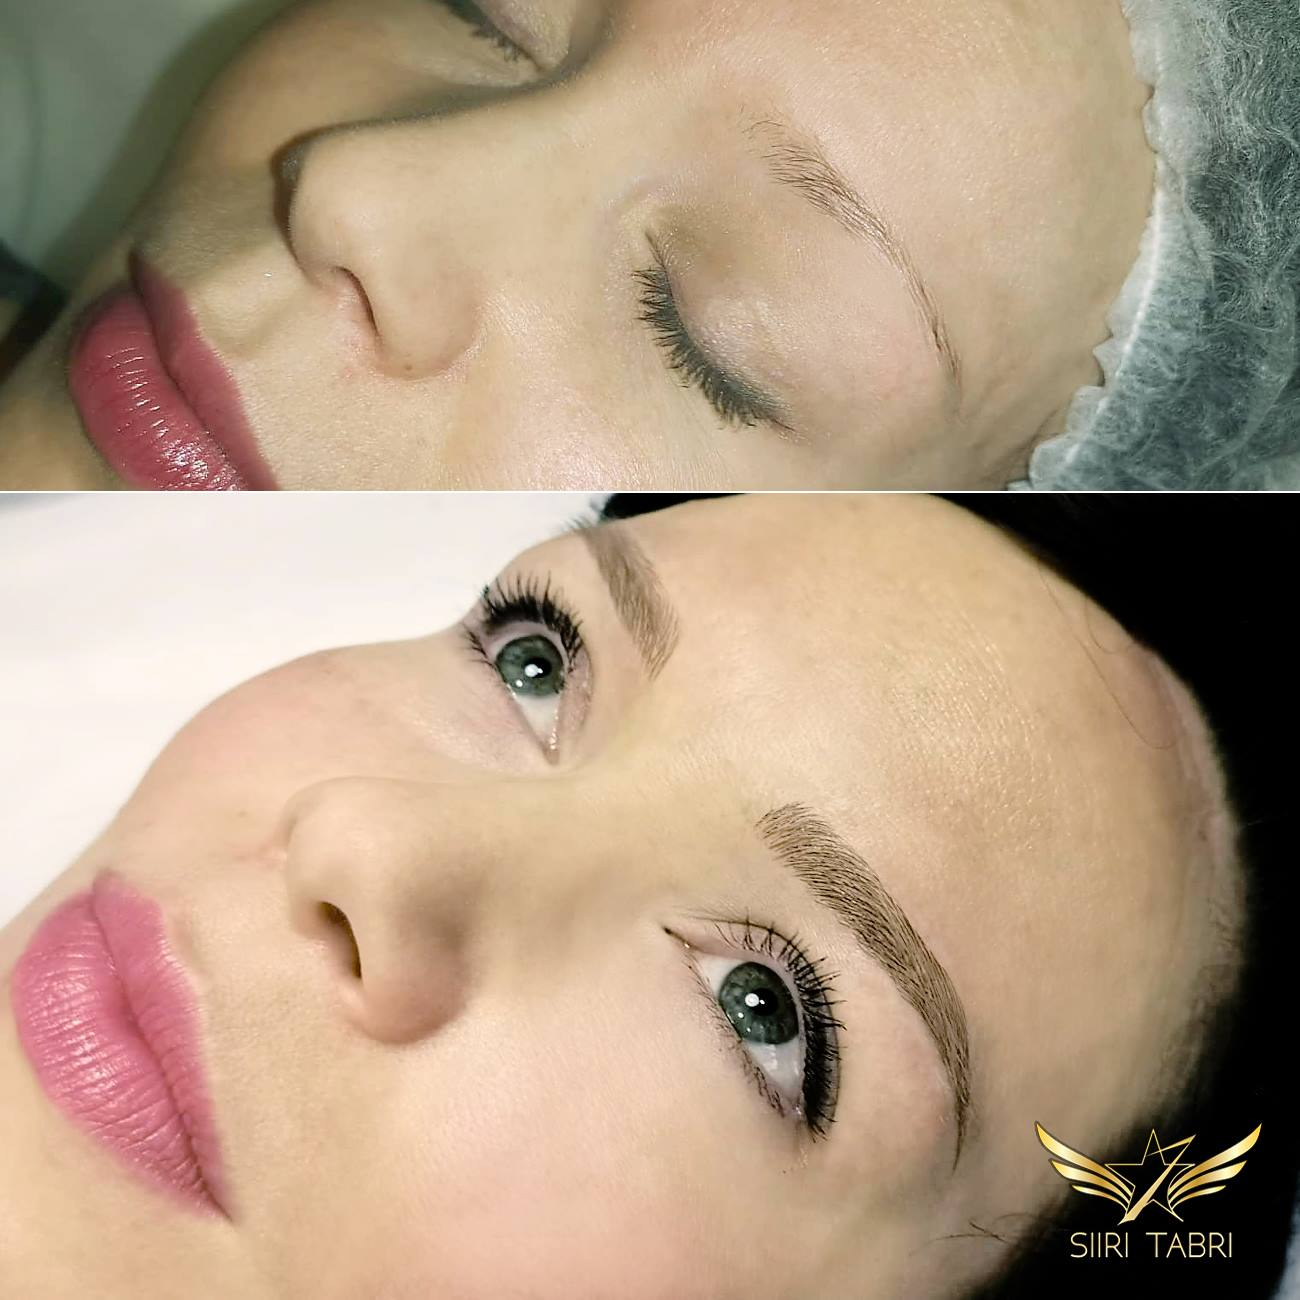 Light microblading - Simply the most natural way of transforming brows.Light microblading - Simply the most natural way of transforming brows.